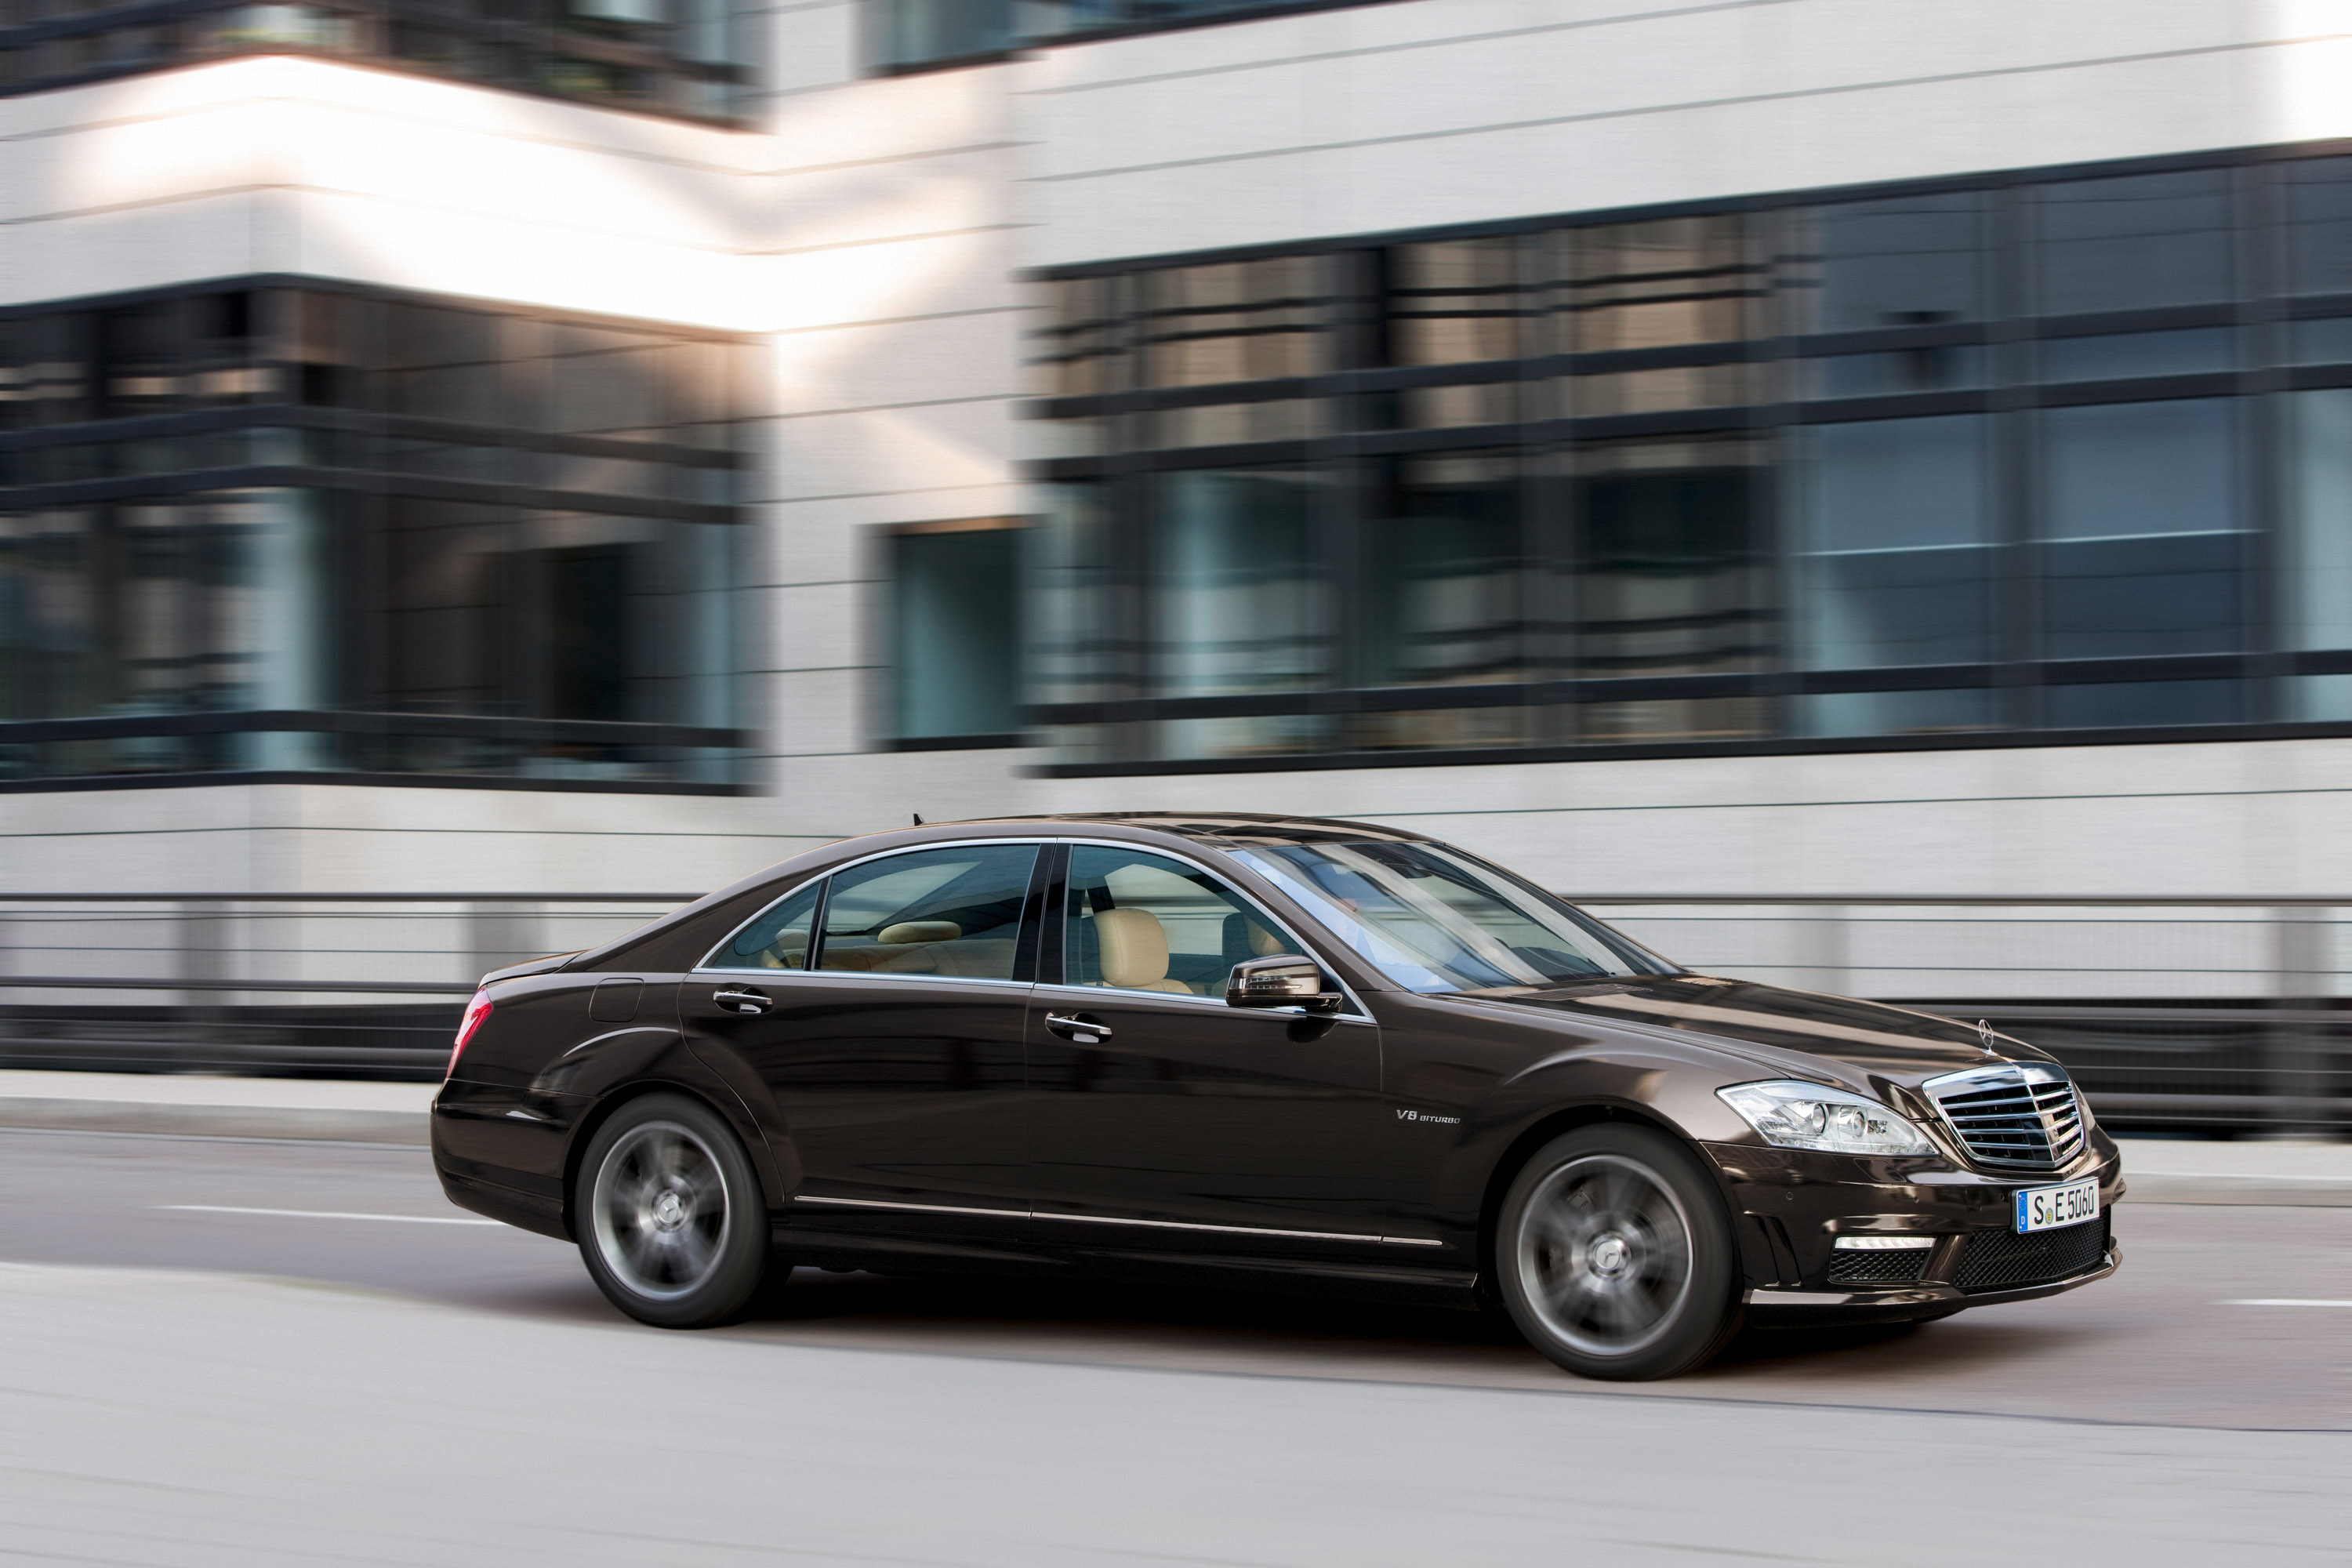 Mercedes-Benz S63 AMG - The ultimate high-performance седан - фотография №2